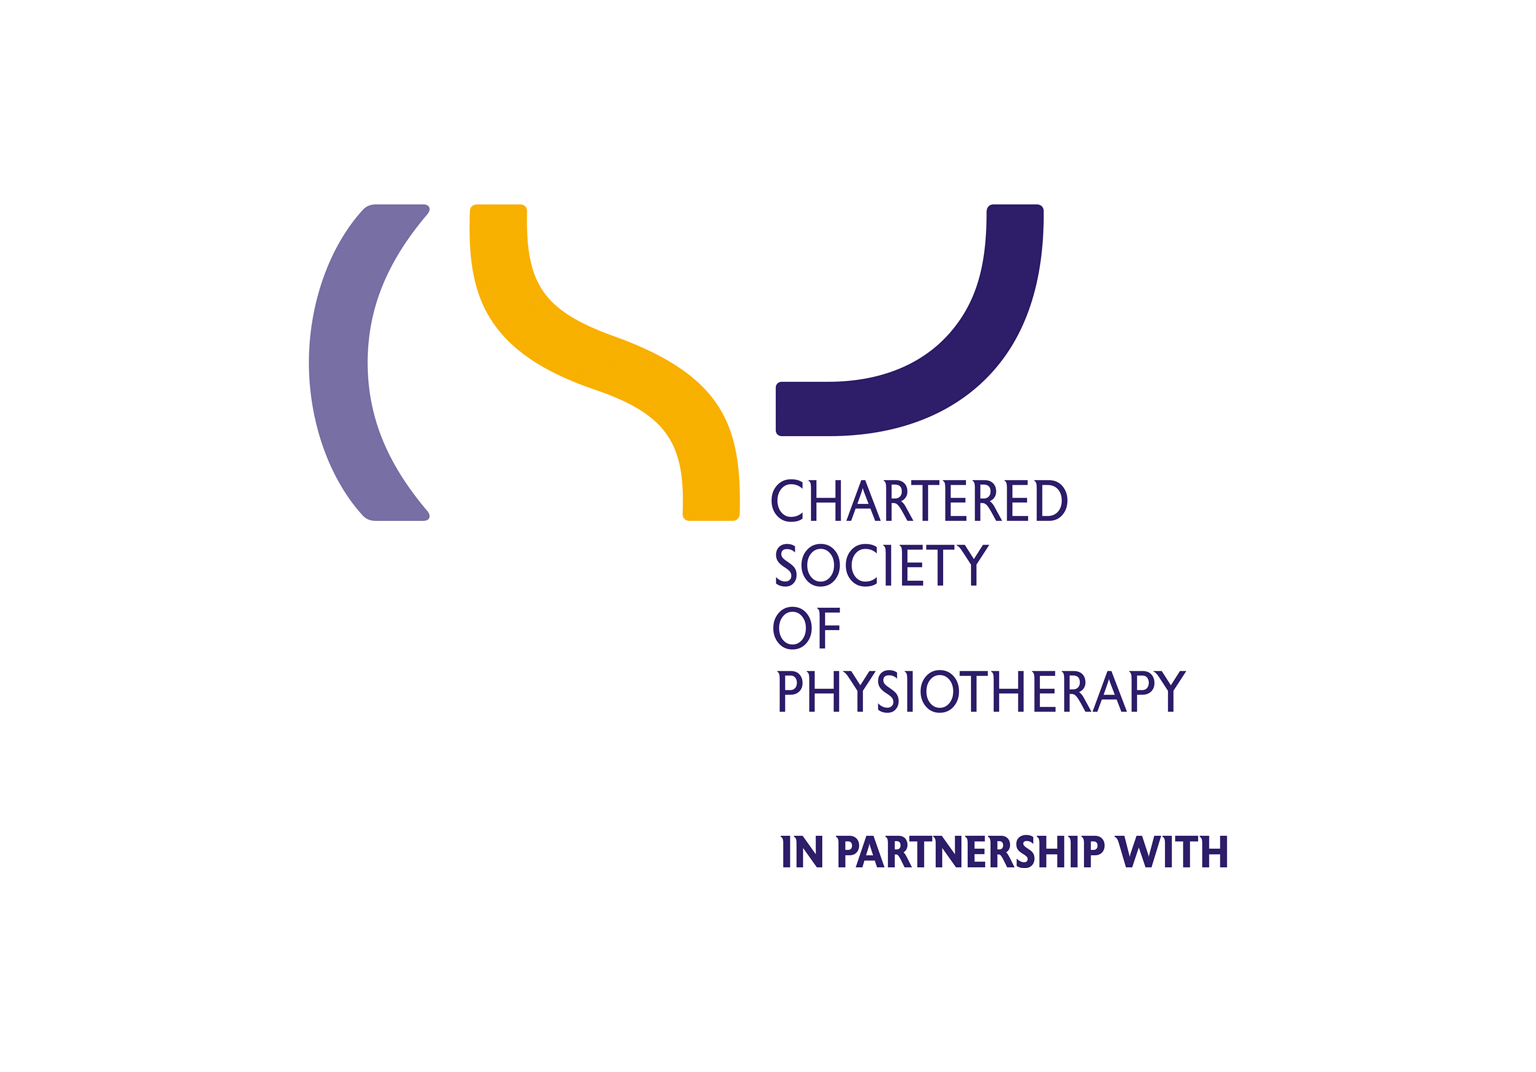 The official Chartered Society of Physiotherapy partnership logo